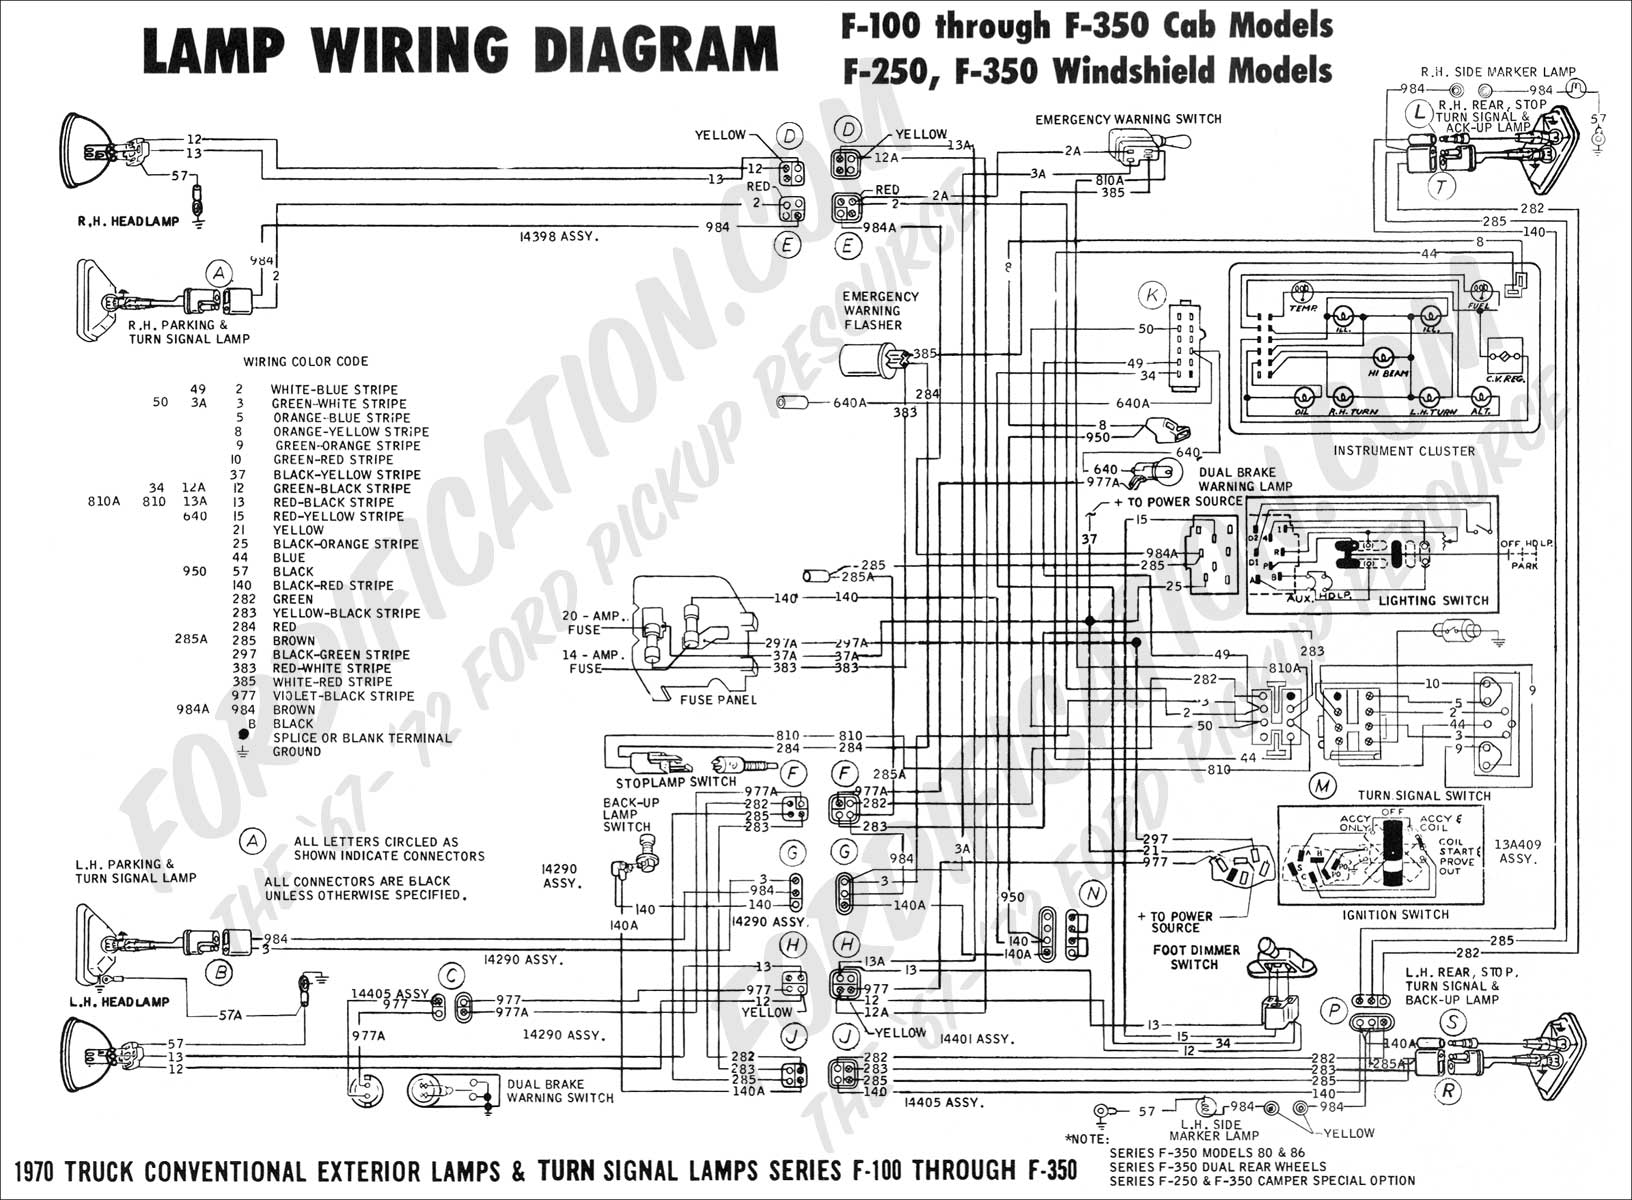 b957ce7 ford e 150 starter solenoid wiring diagram | wiring resources  wiring resources